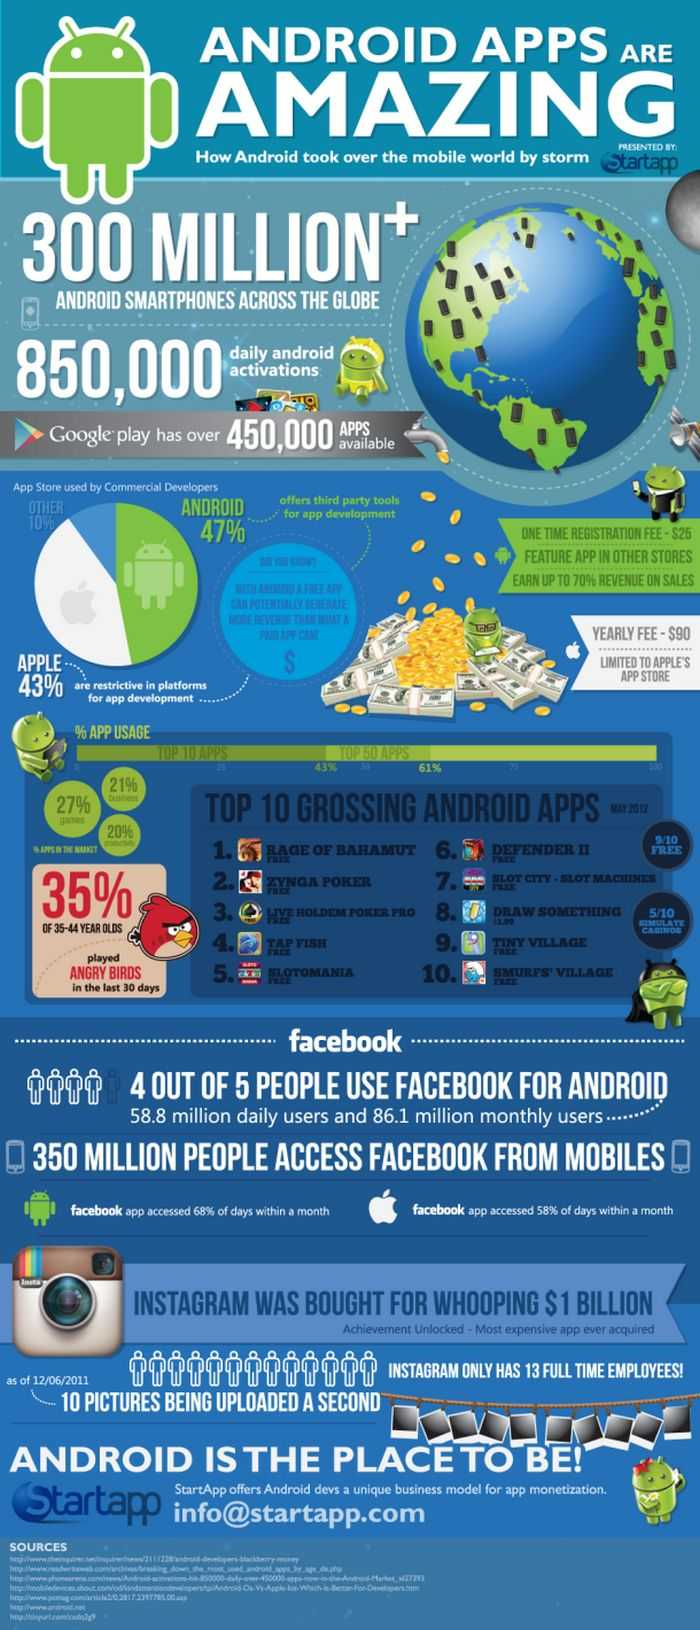 Android Apps Are Amazing [INFOGRAPHIC]